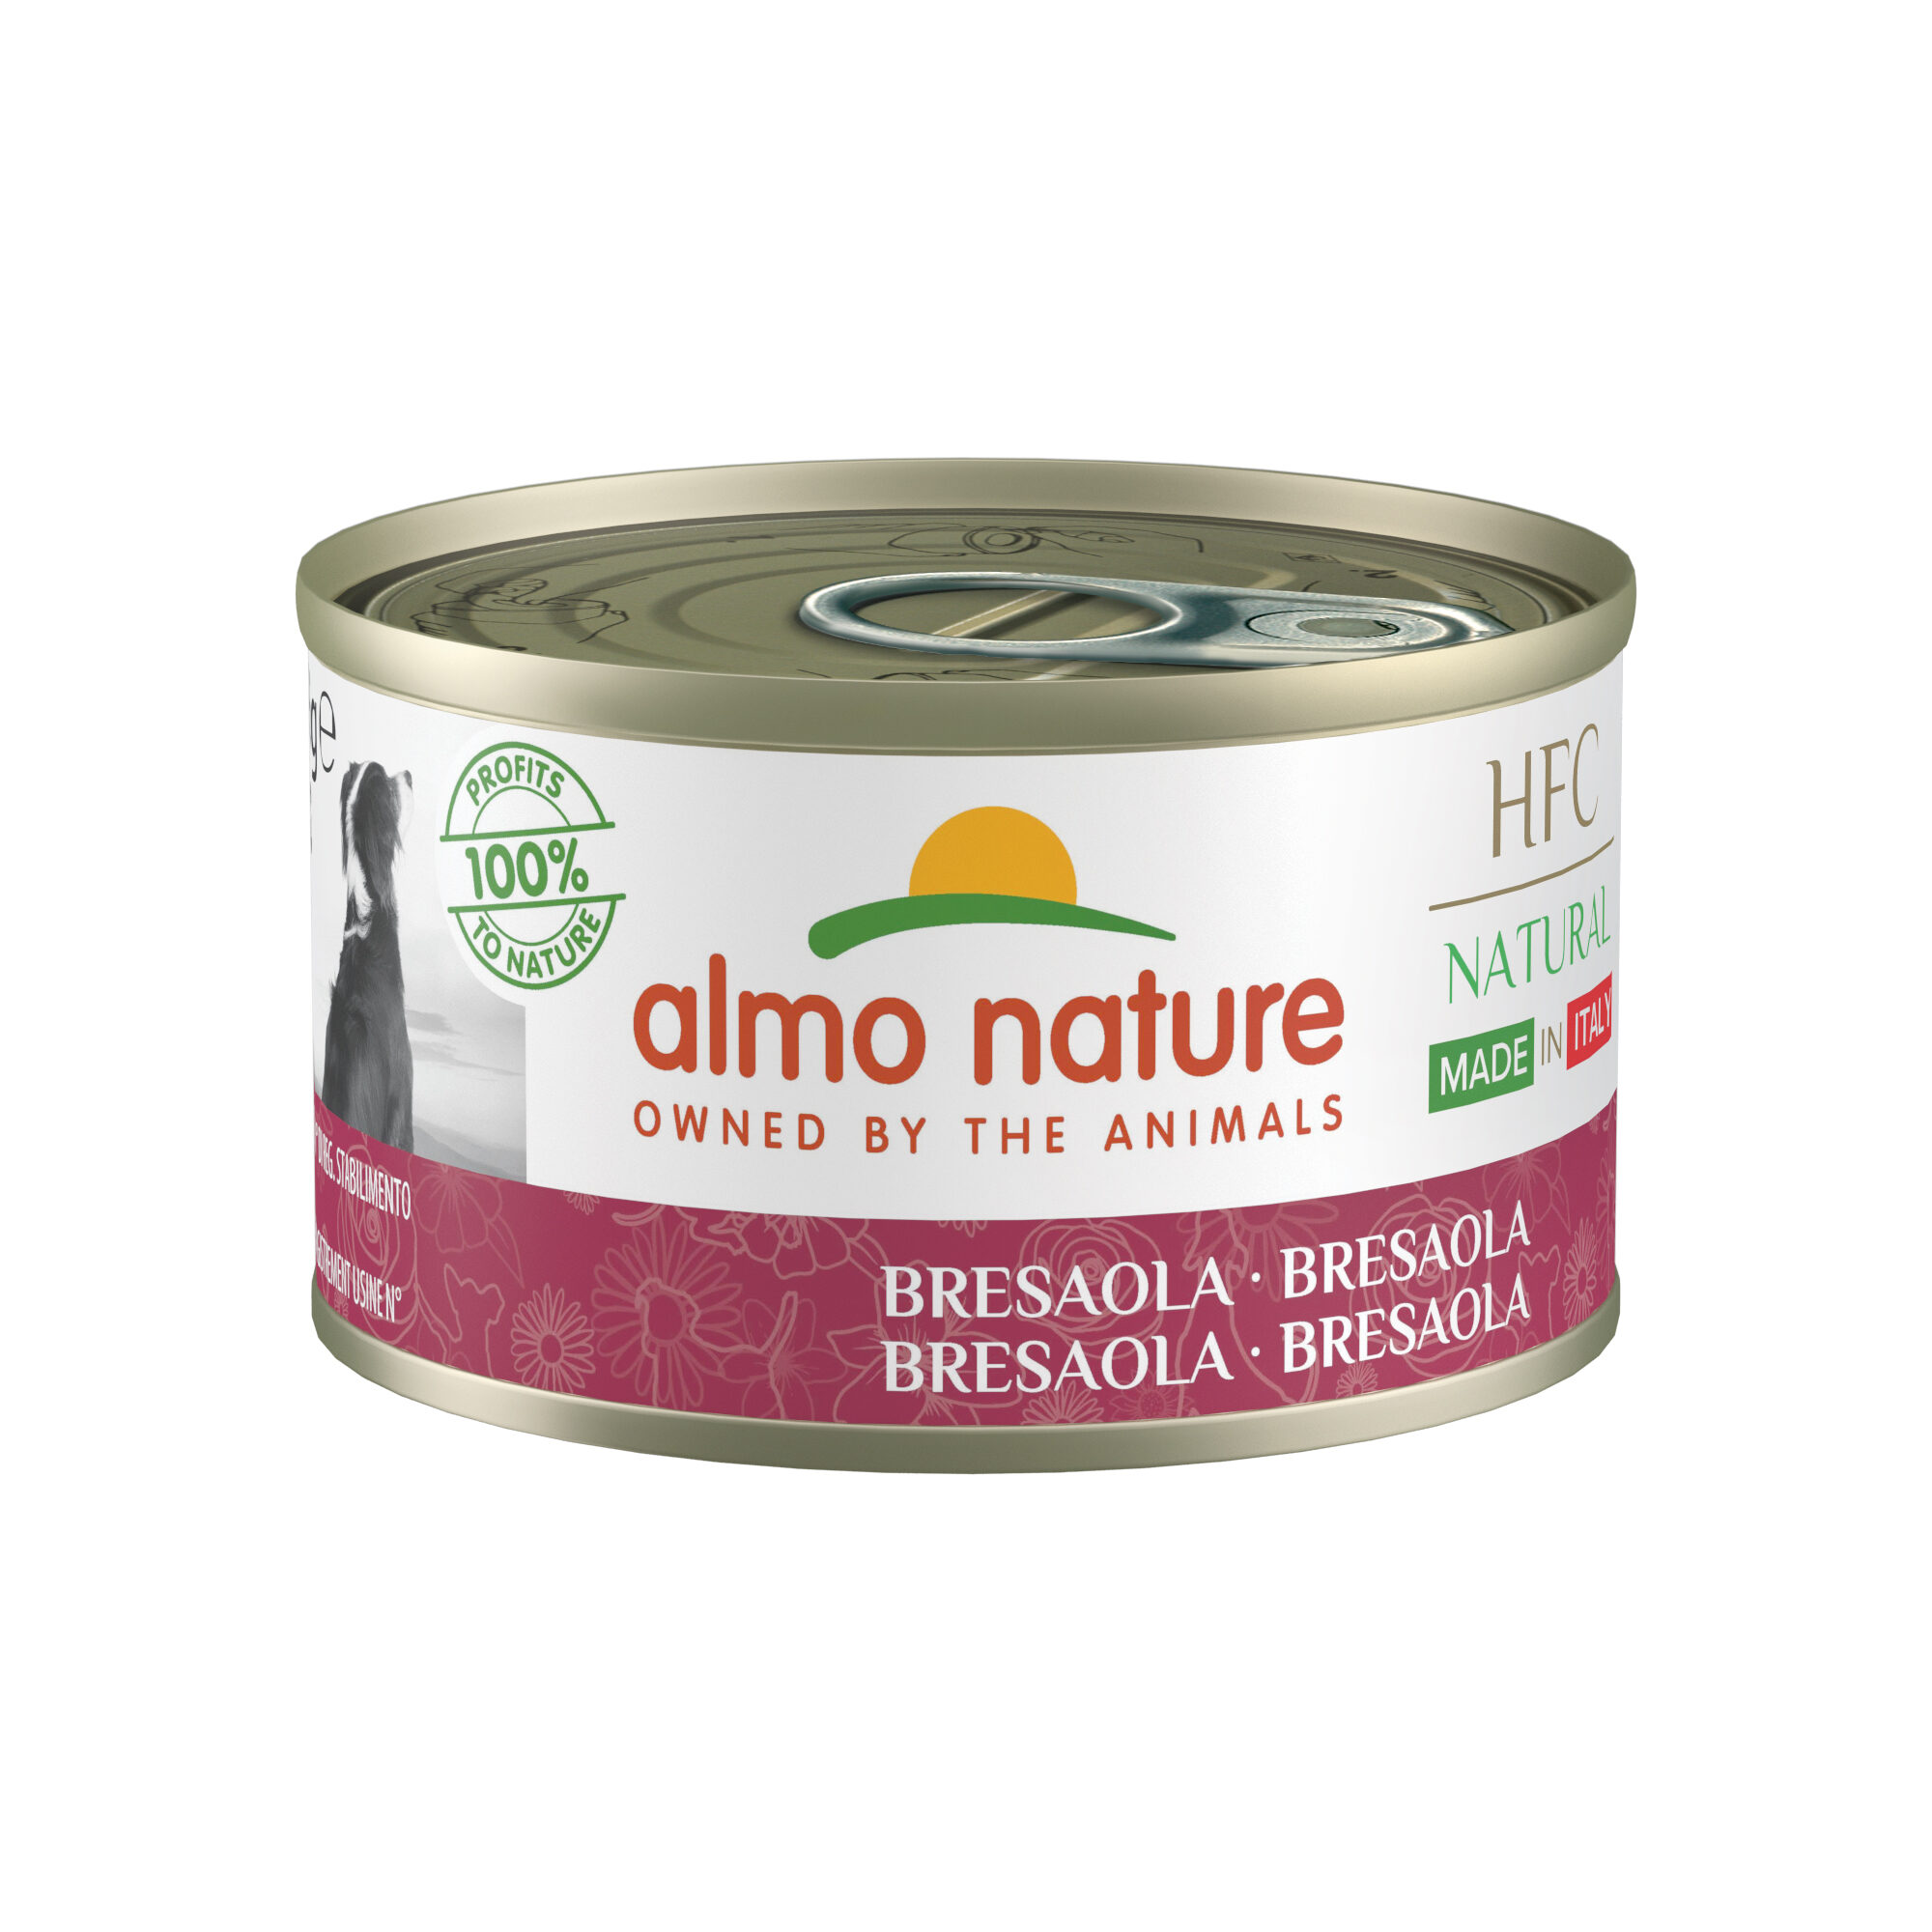 Almo Nature HFC Natural Made in Italy - Bresaola - 24 x 95 g